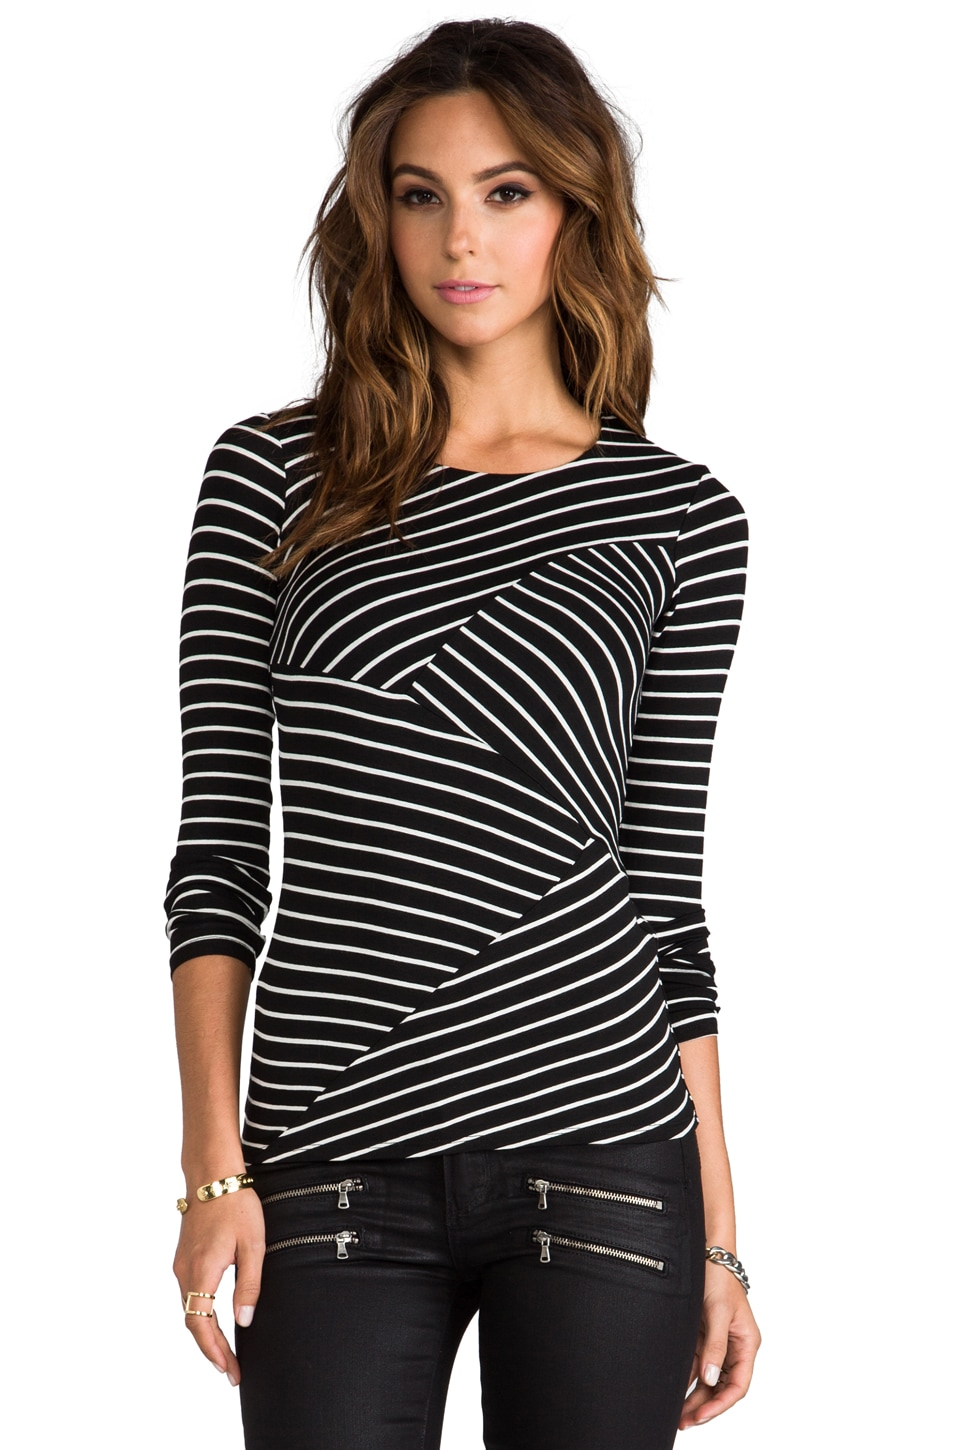 Bailey 44 The Thirteenth Window Striped Top in Black/Cream